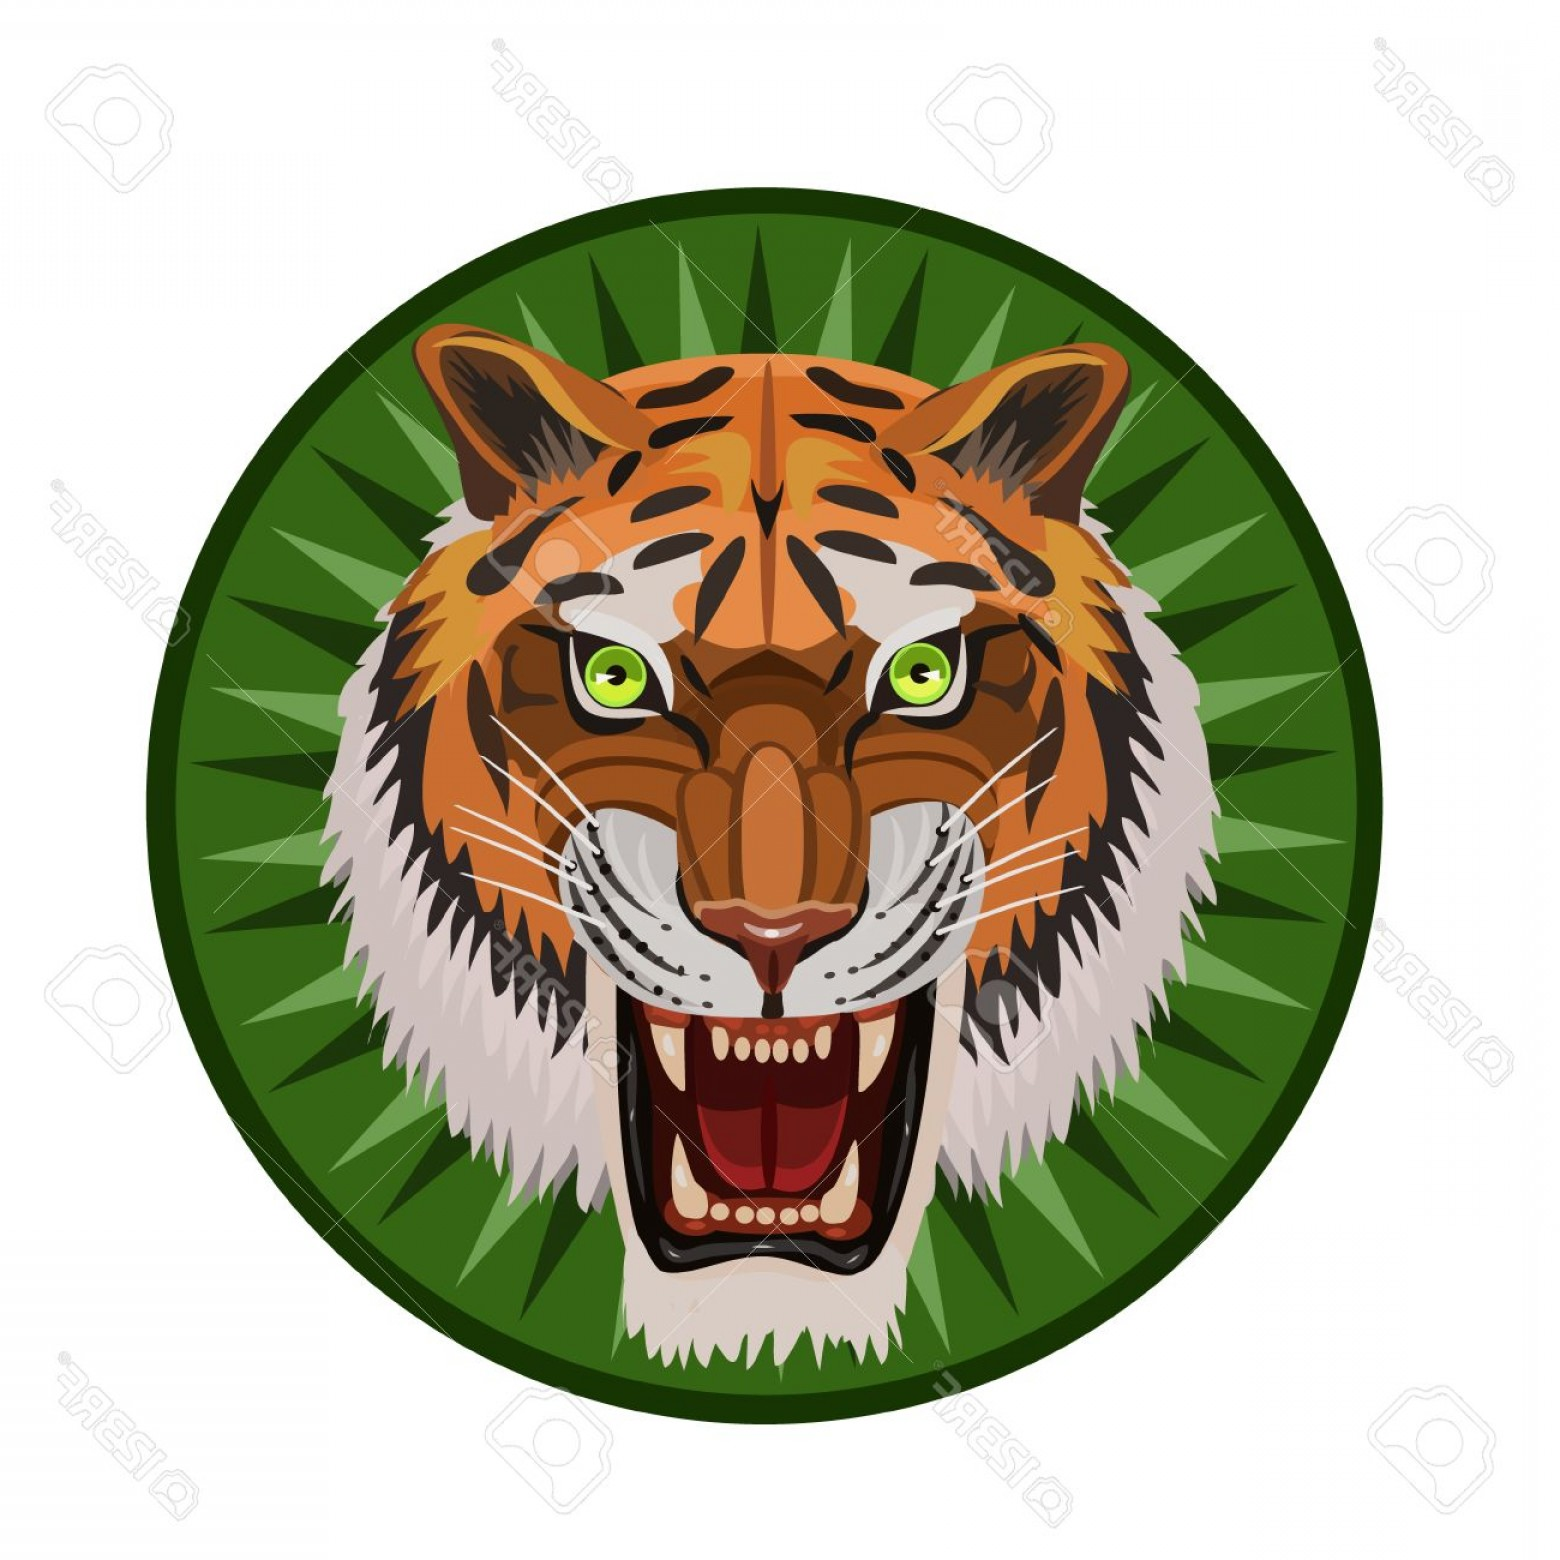 Green Tiger Vector: Photostock Vector Icon Angry Tiger With An Open Mouth Visible Teeth Whiskers Green Eyes And An Icon For The Site